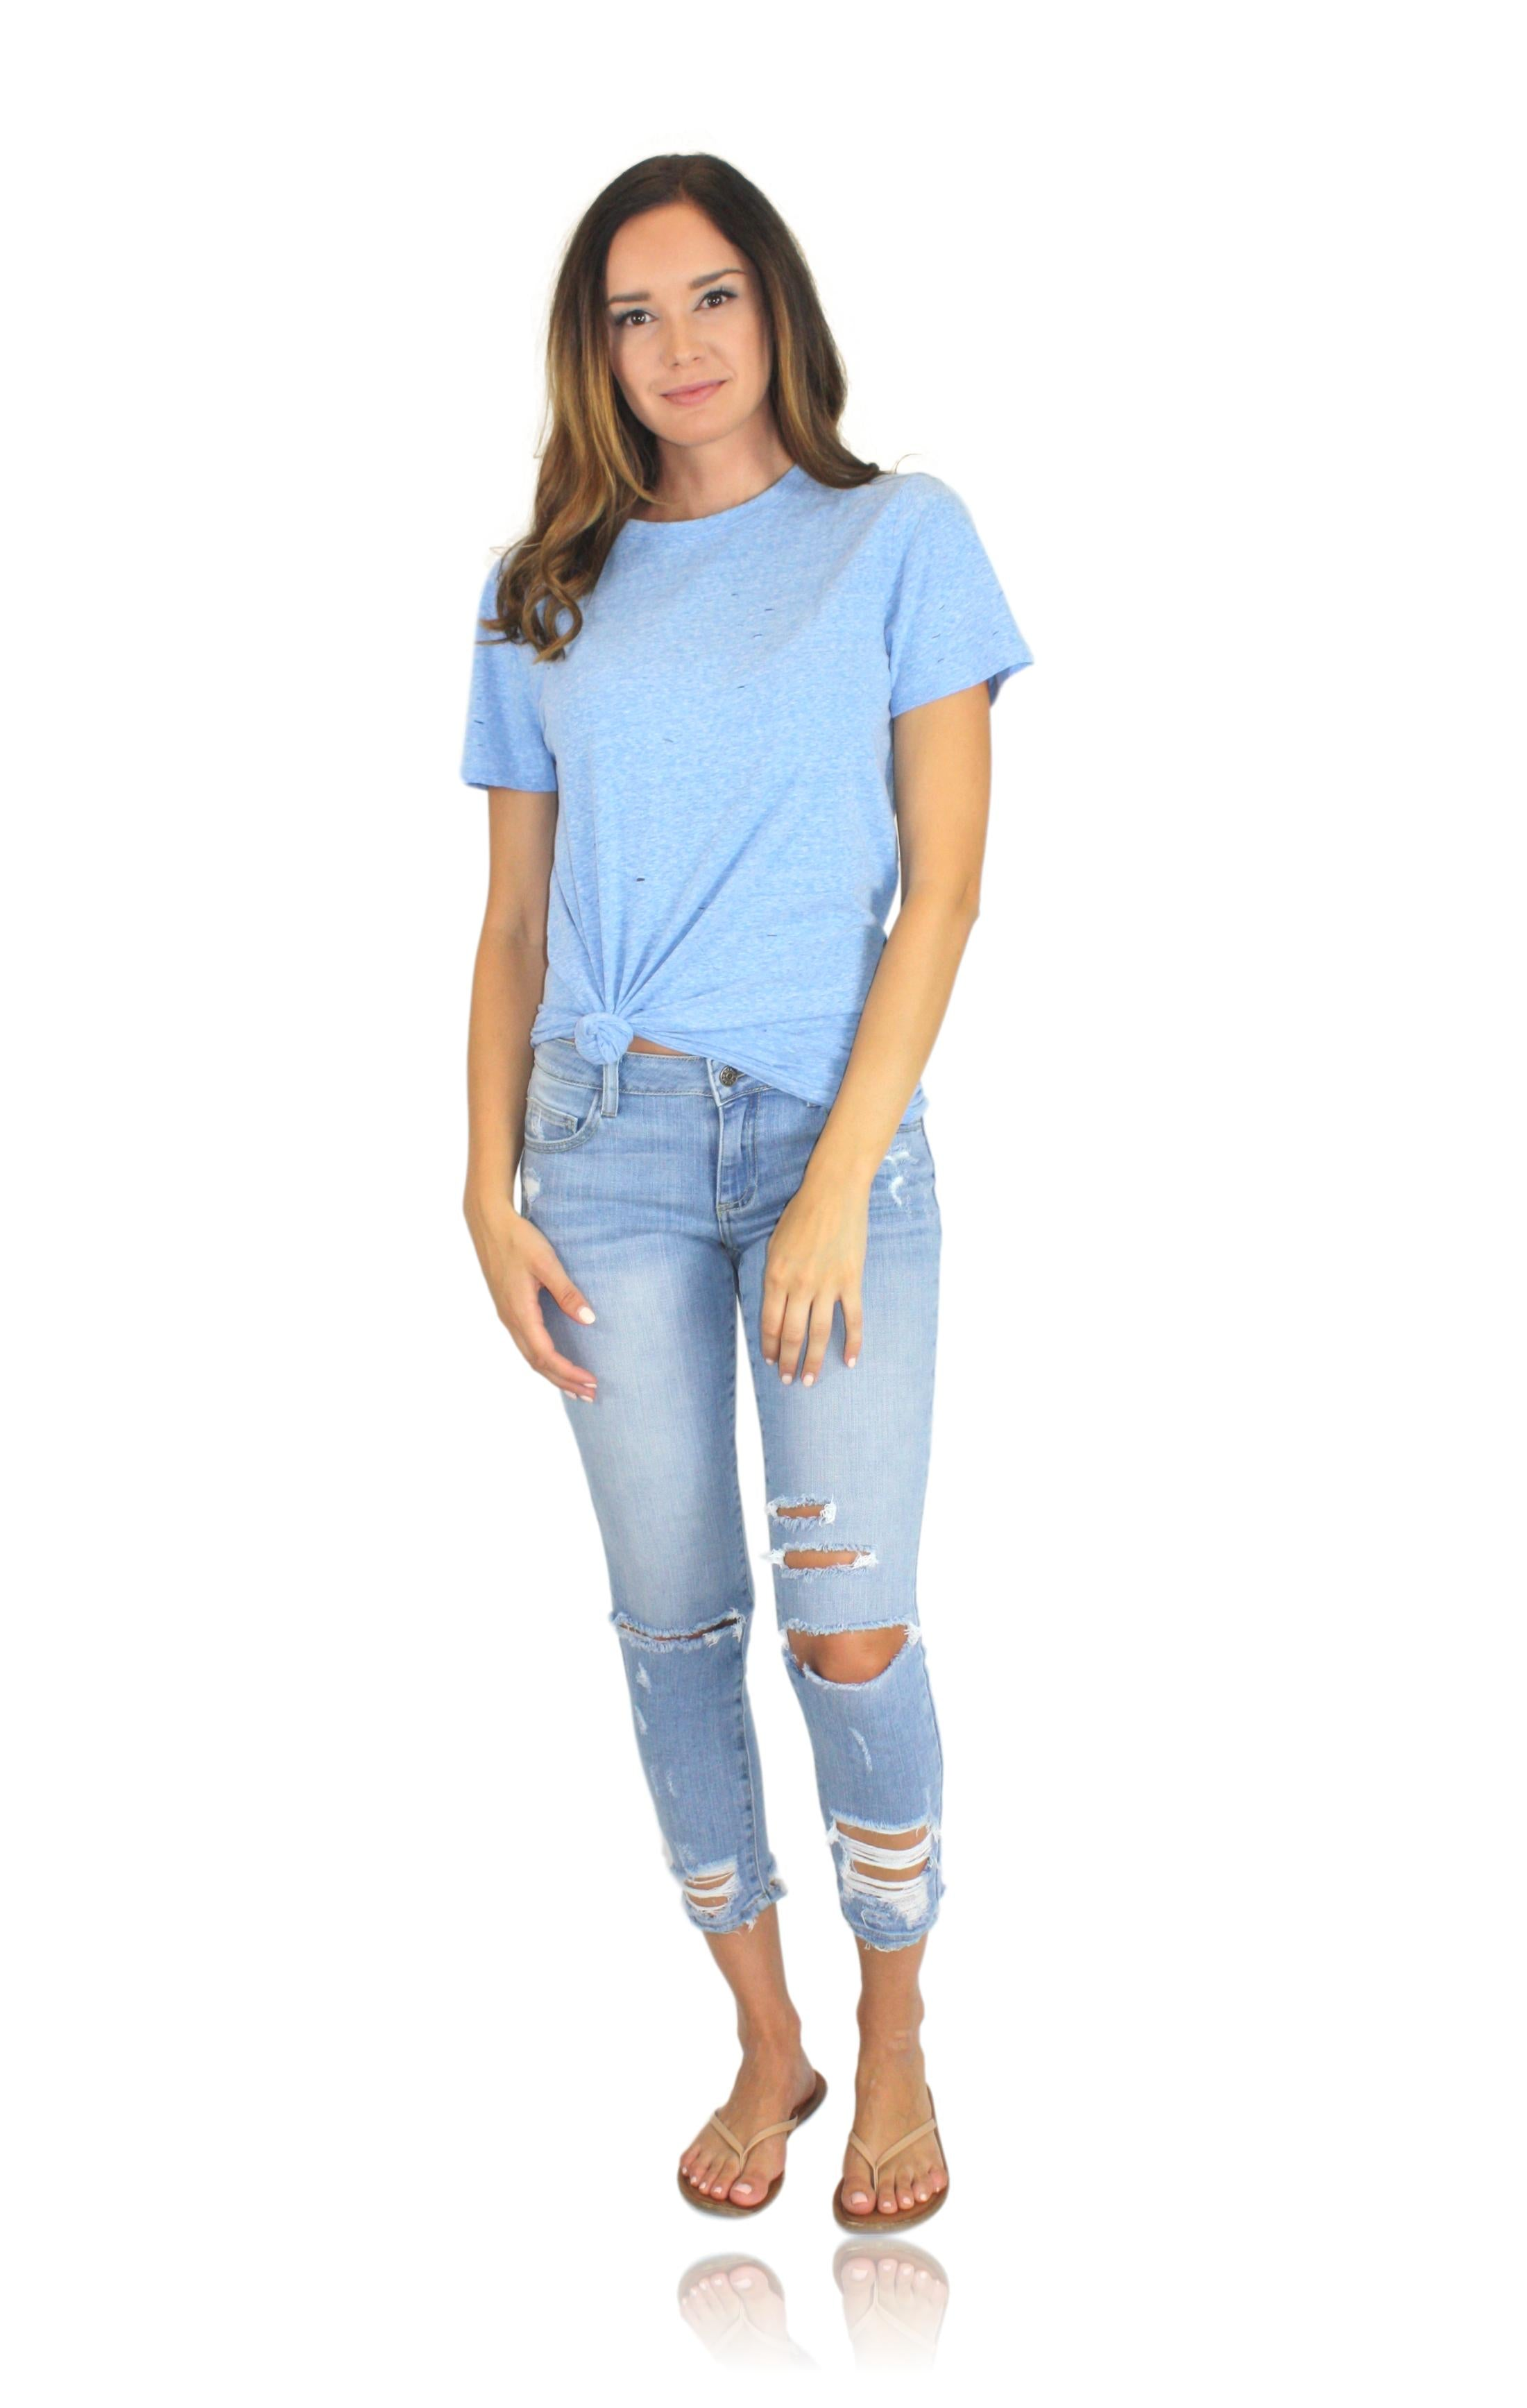 CUT IT TEE IN BLUE